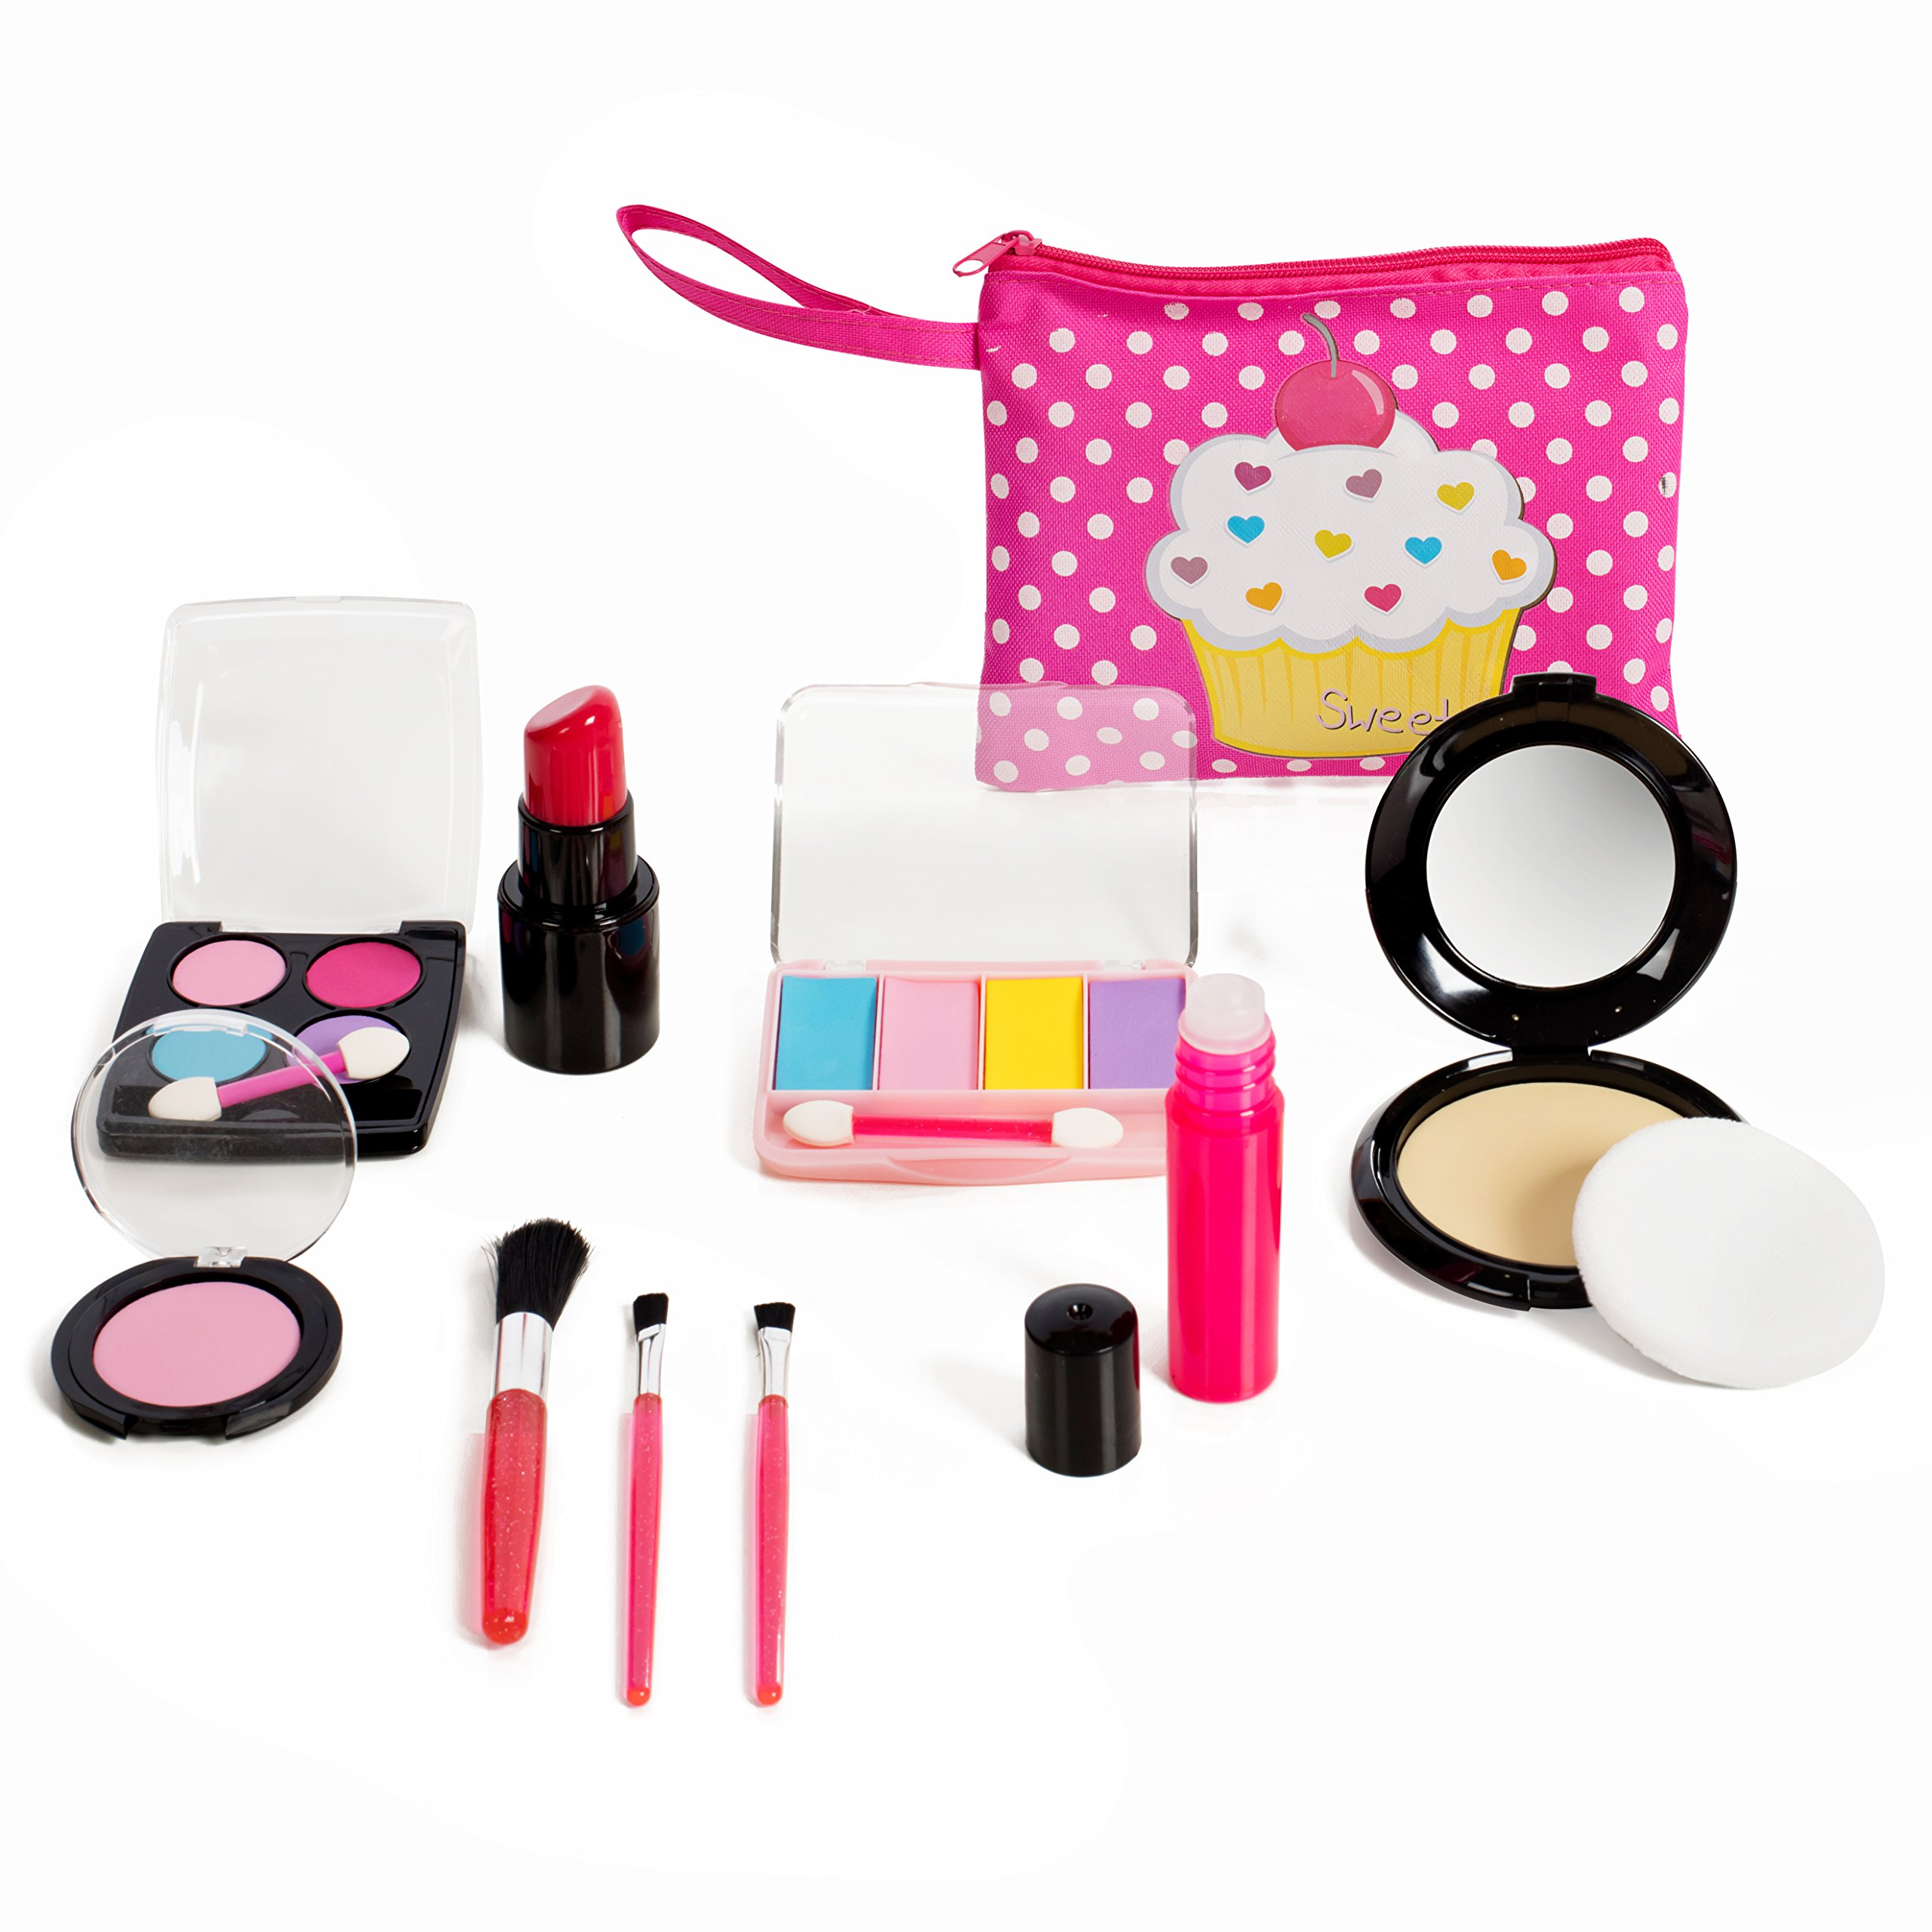 Beverly Hills Kids Pretend Play Makeup Cosmetic Kit With Bright Polka Dotted Cosmetic Bag by Beverly Hills (Image #3)